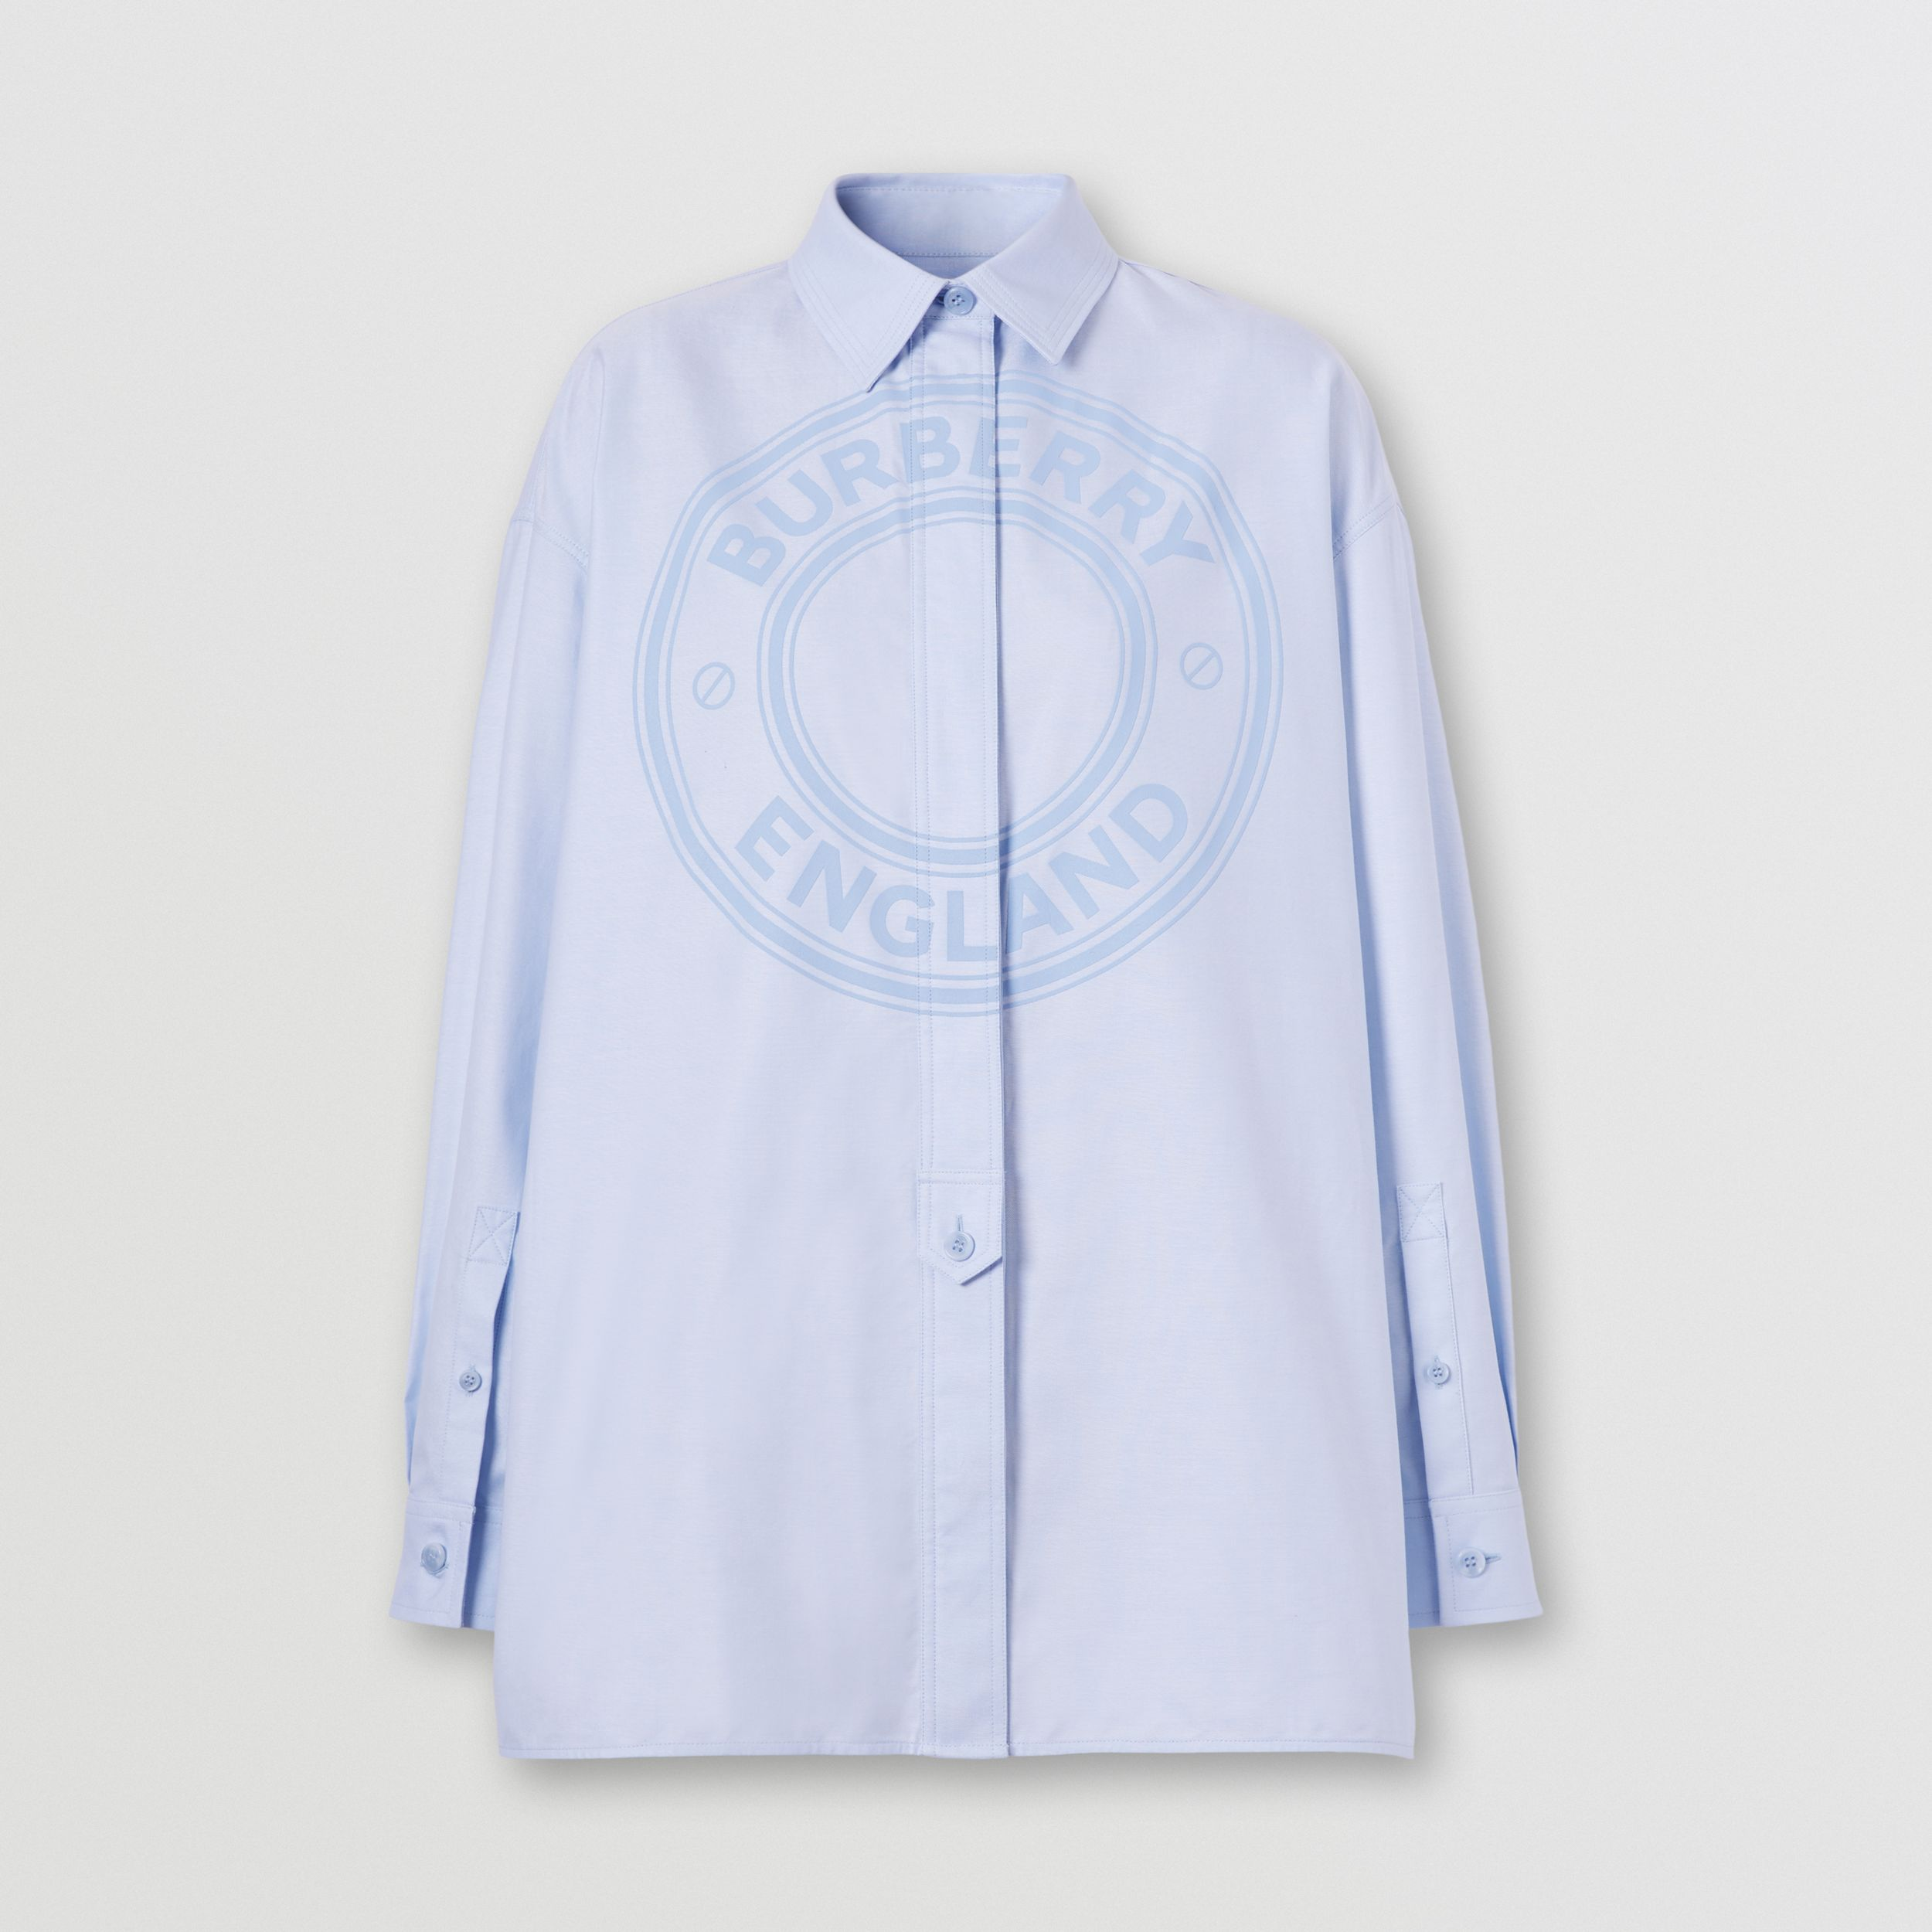 Logo Graphic Cotton Oxford Oversized Shirt in Pale Blue - Women | Burberry United Kingdom - 4